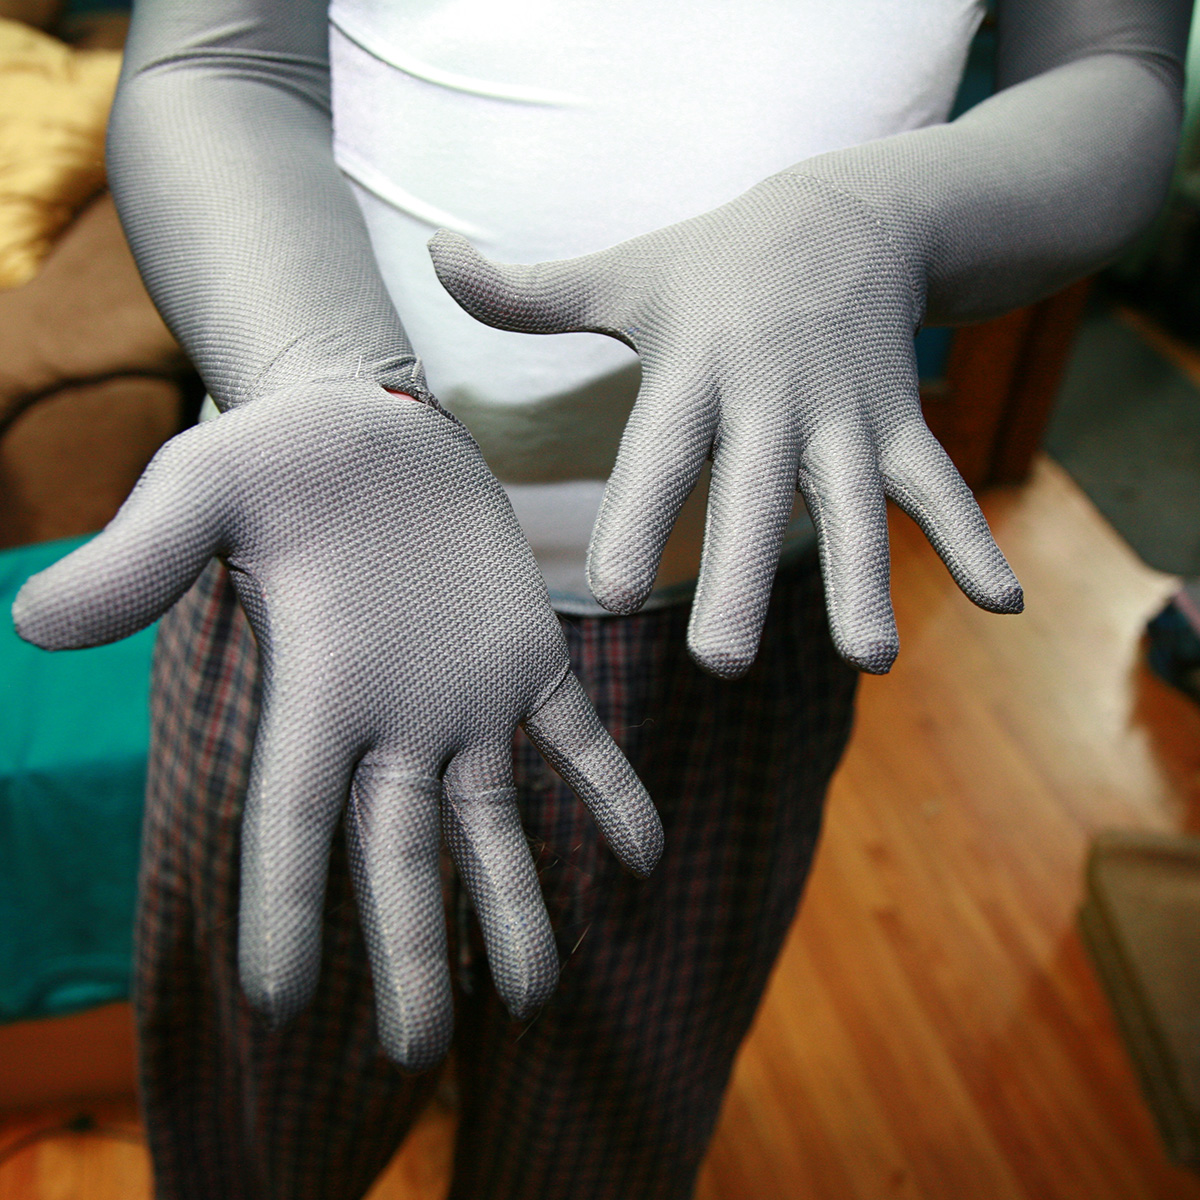 close up view of two hands in long grey gloves.